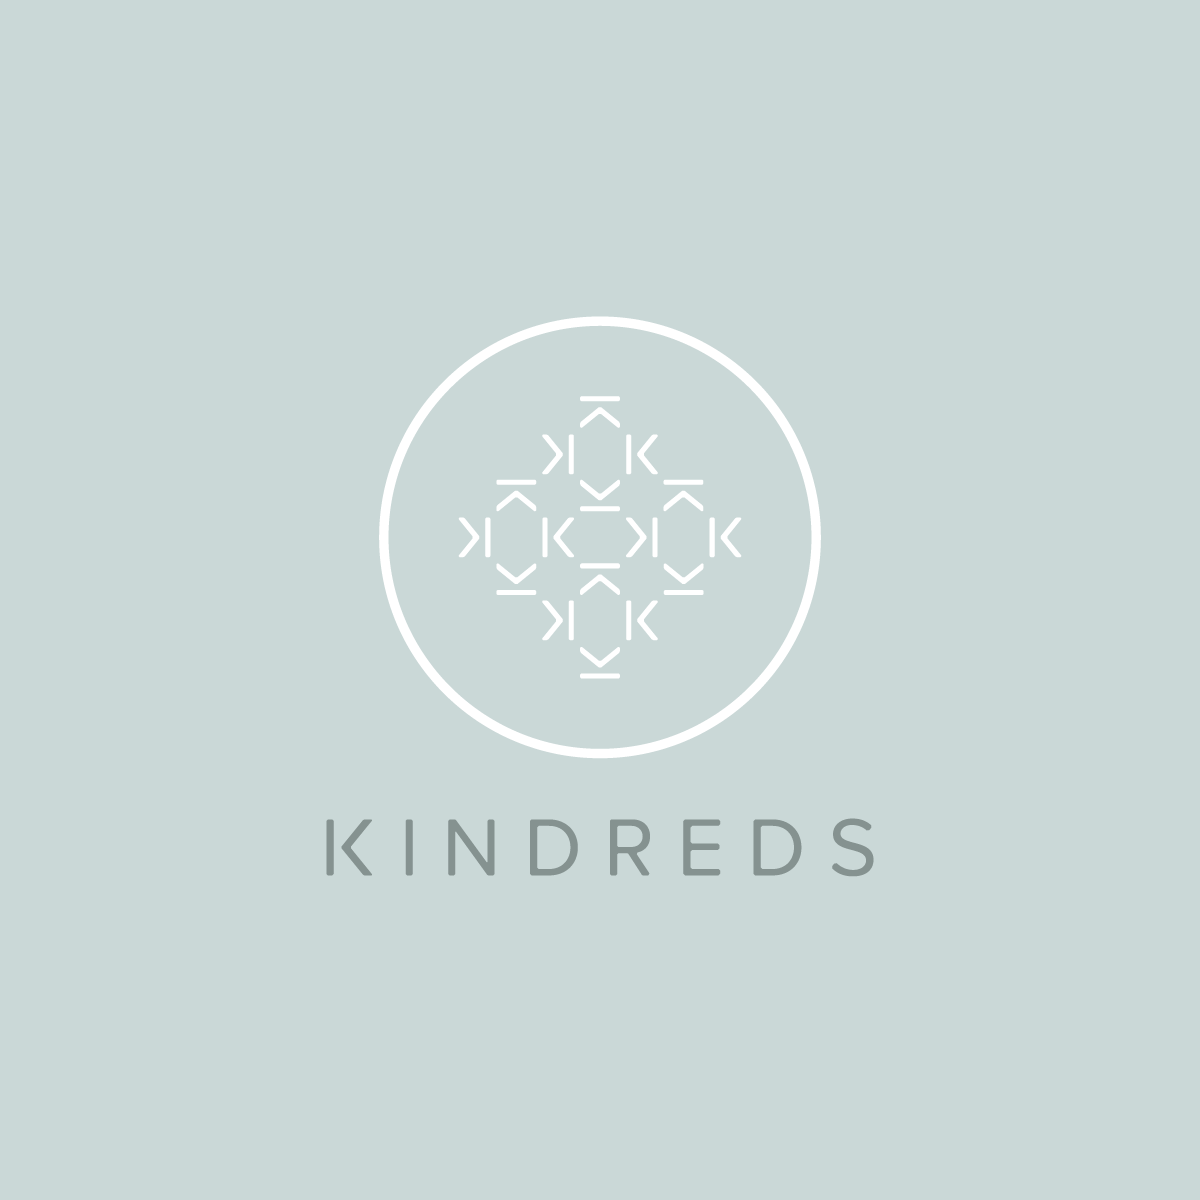 iconwithkindreds_bluebackground-2.png